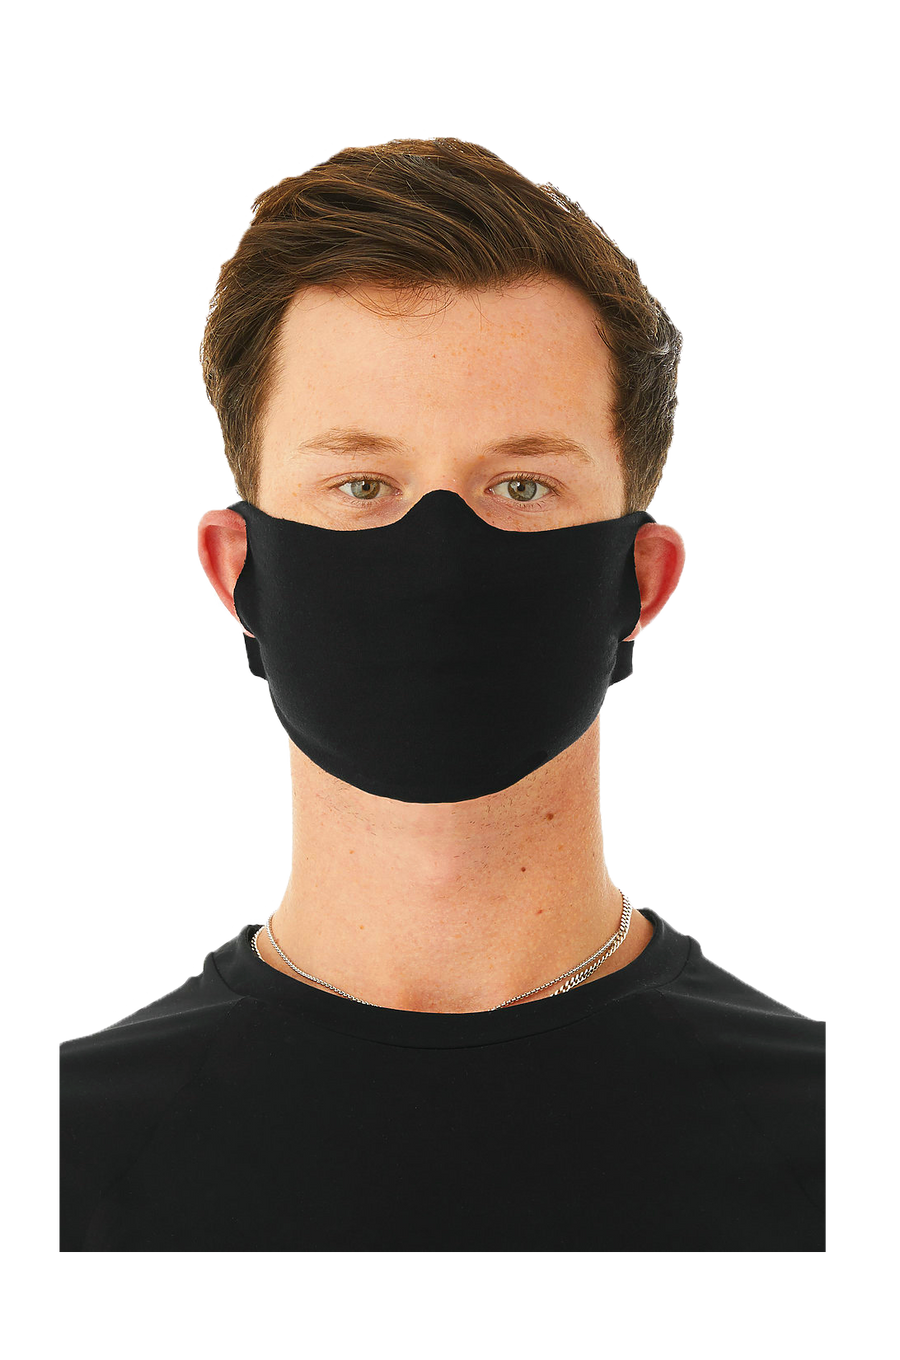 Jersey Fabric Face Cover Face Mask USA